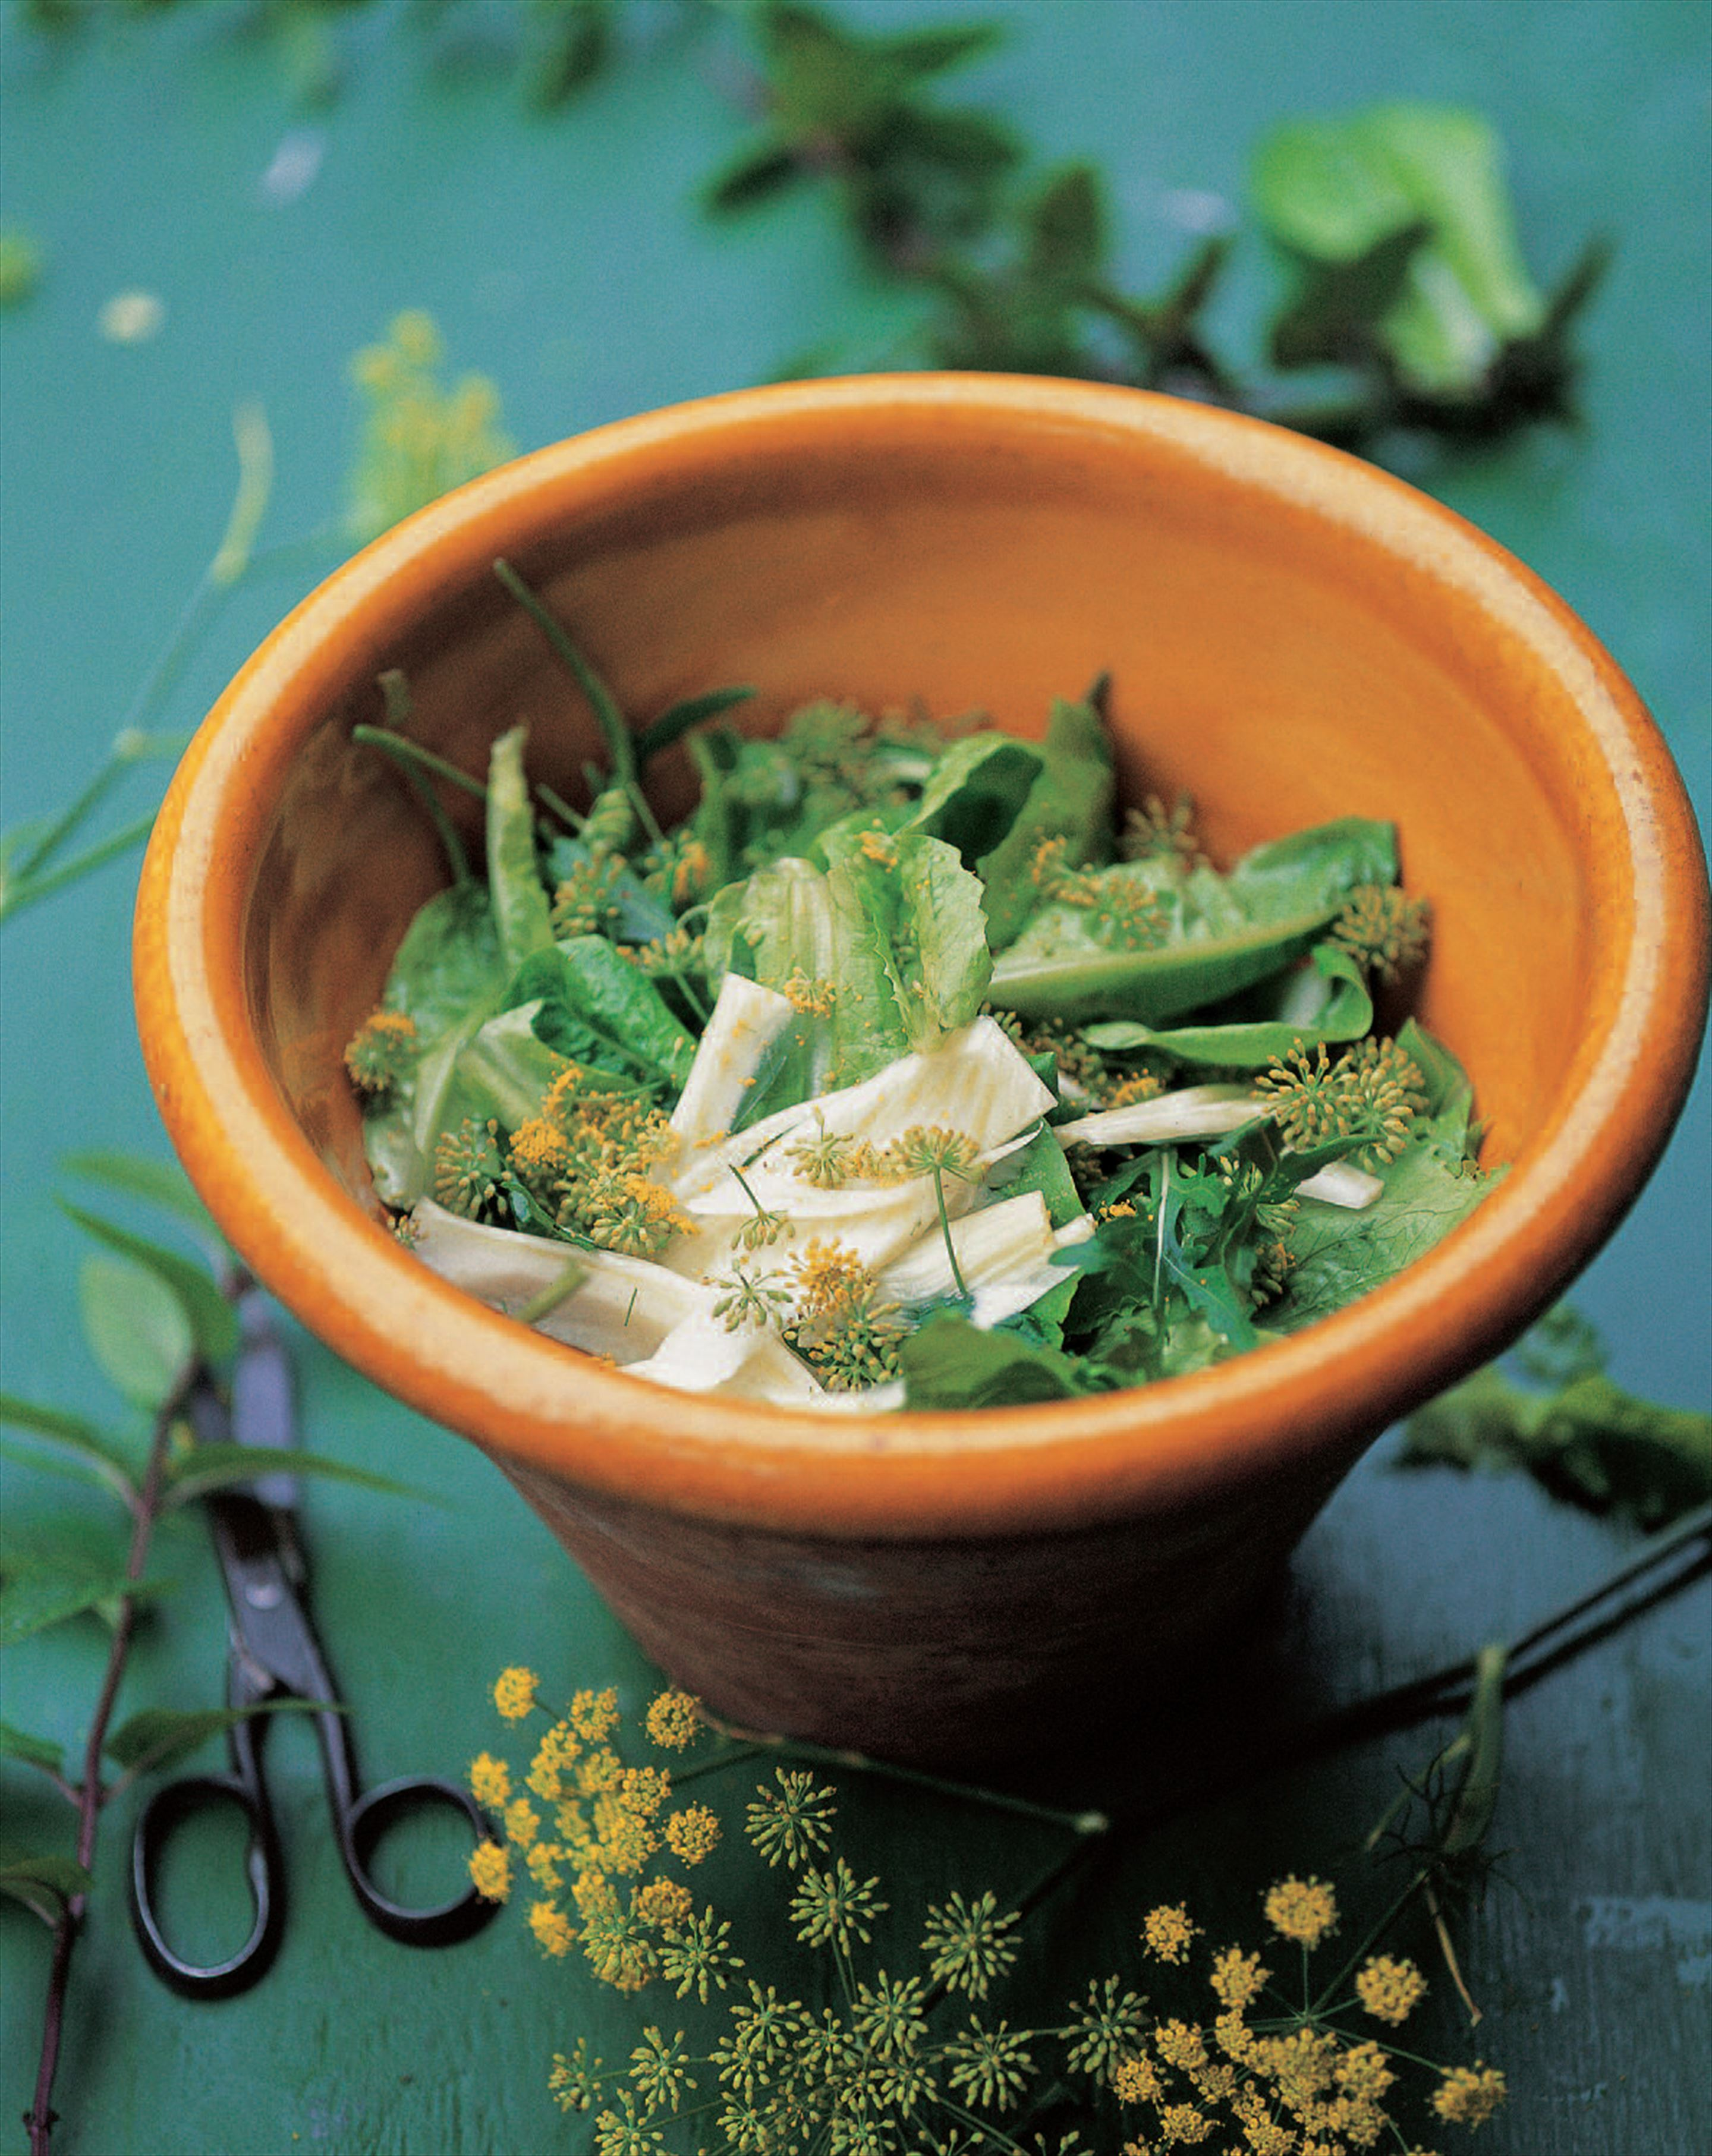 Green salad with fennel